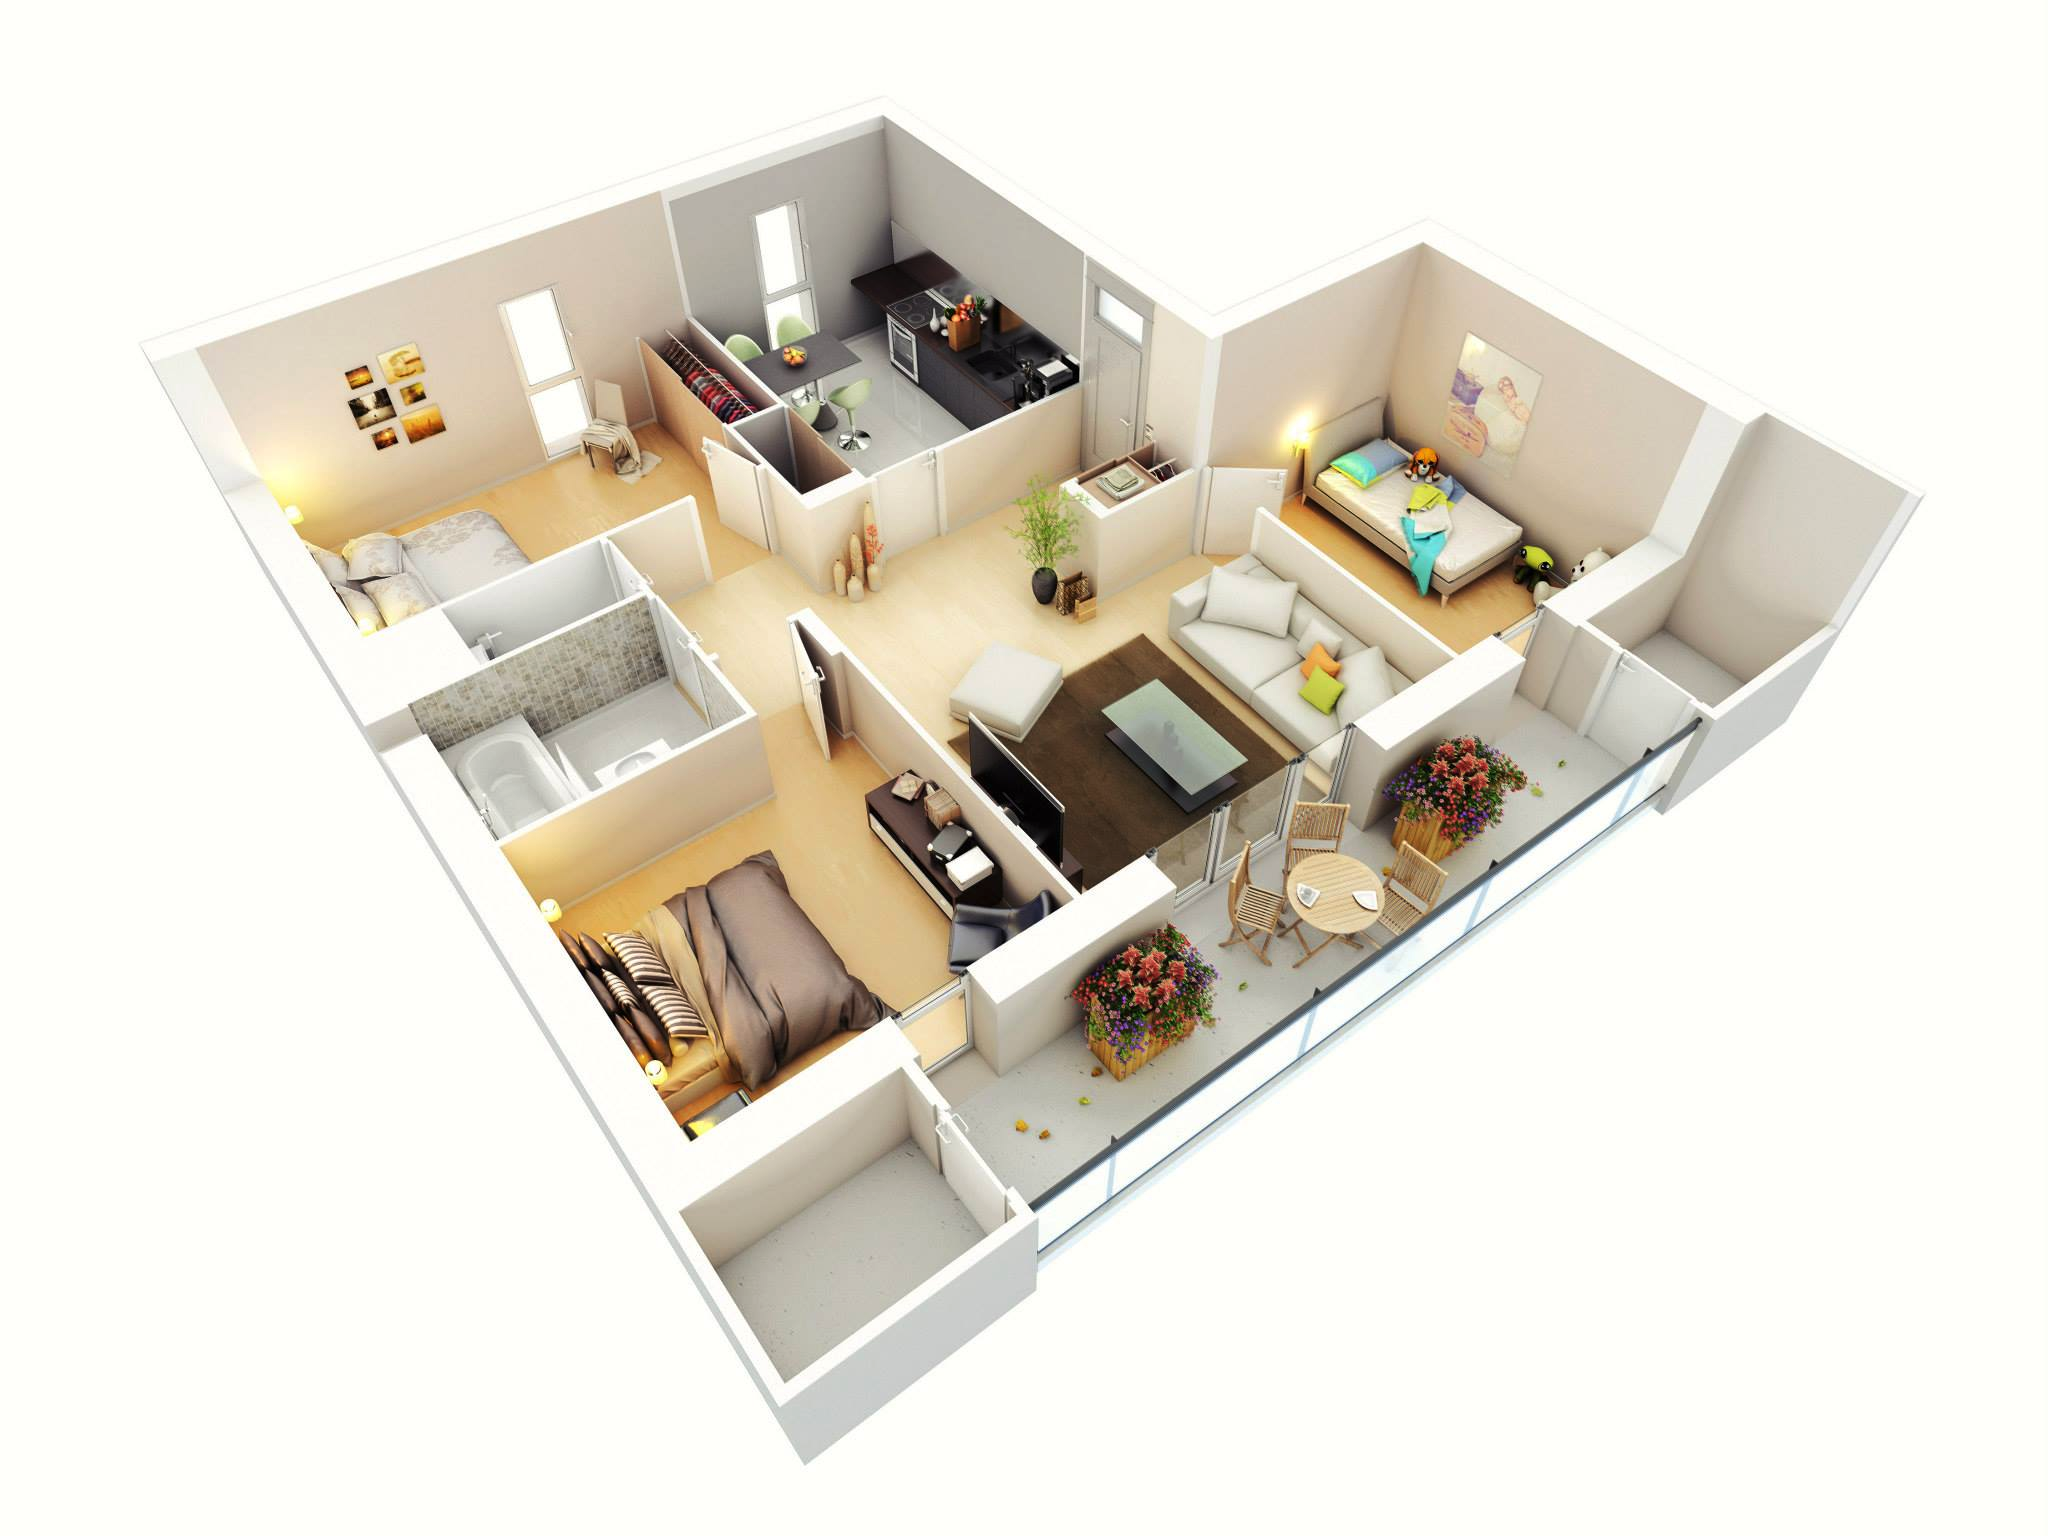 25 more 3 bedroom 3d floor plans for 3 bedroom house layout ideas